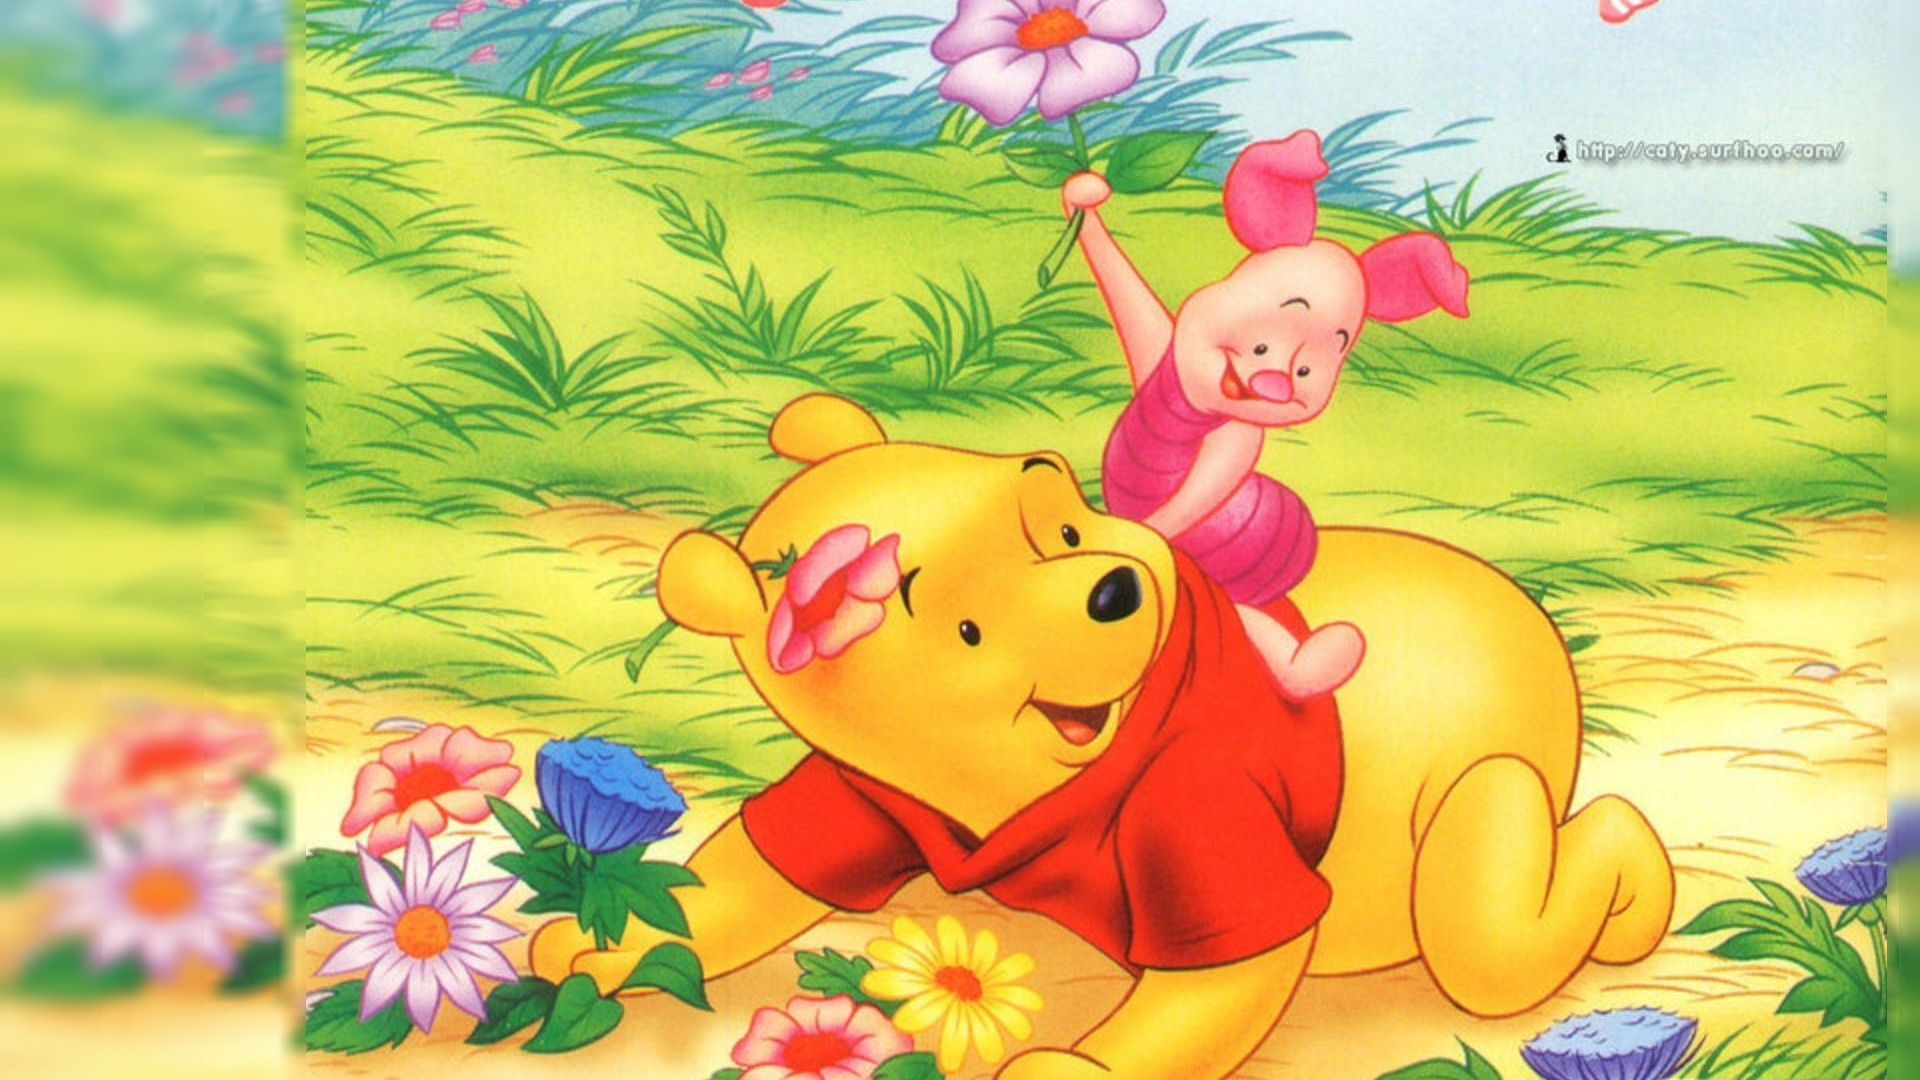 1920x1080 Winnie The Pooh HD Wallpaper | Background Image |  | ID:425095 -  Wallpaper Abyss